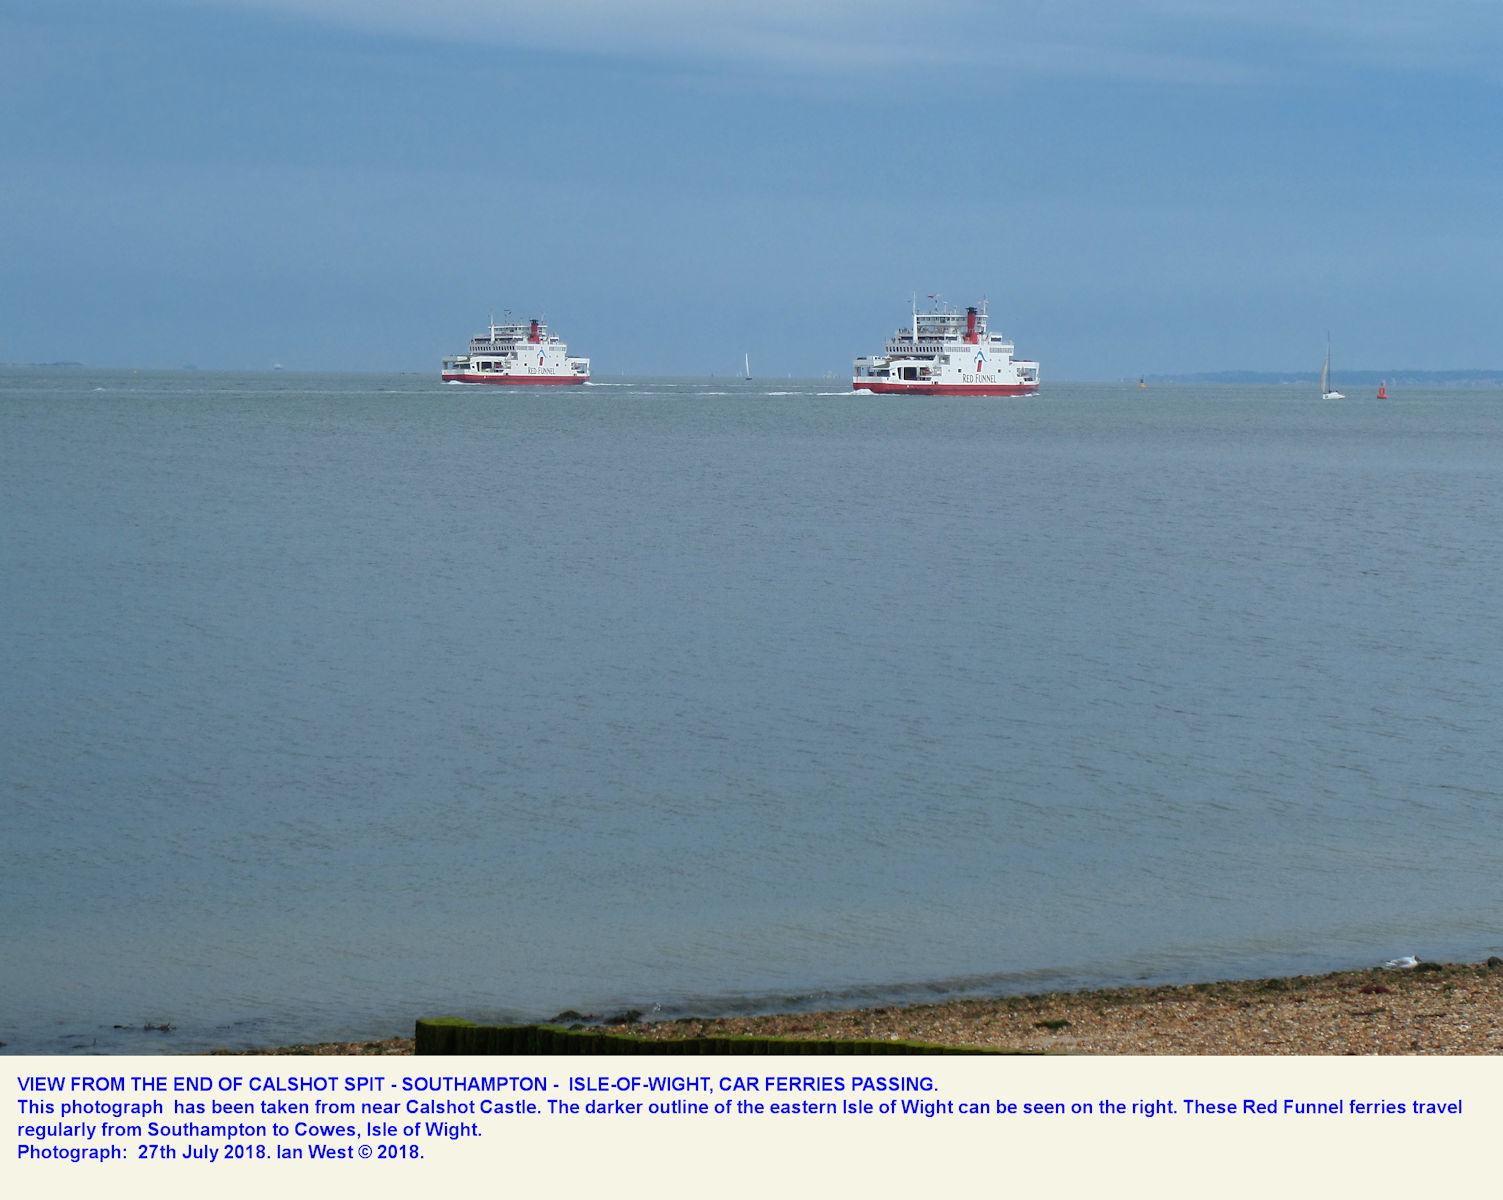 Seen from the end of Calshot Spit, two passing ferries on the Southampton - Cowes, Isle of Wight route, 27th June 2018